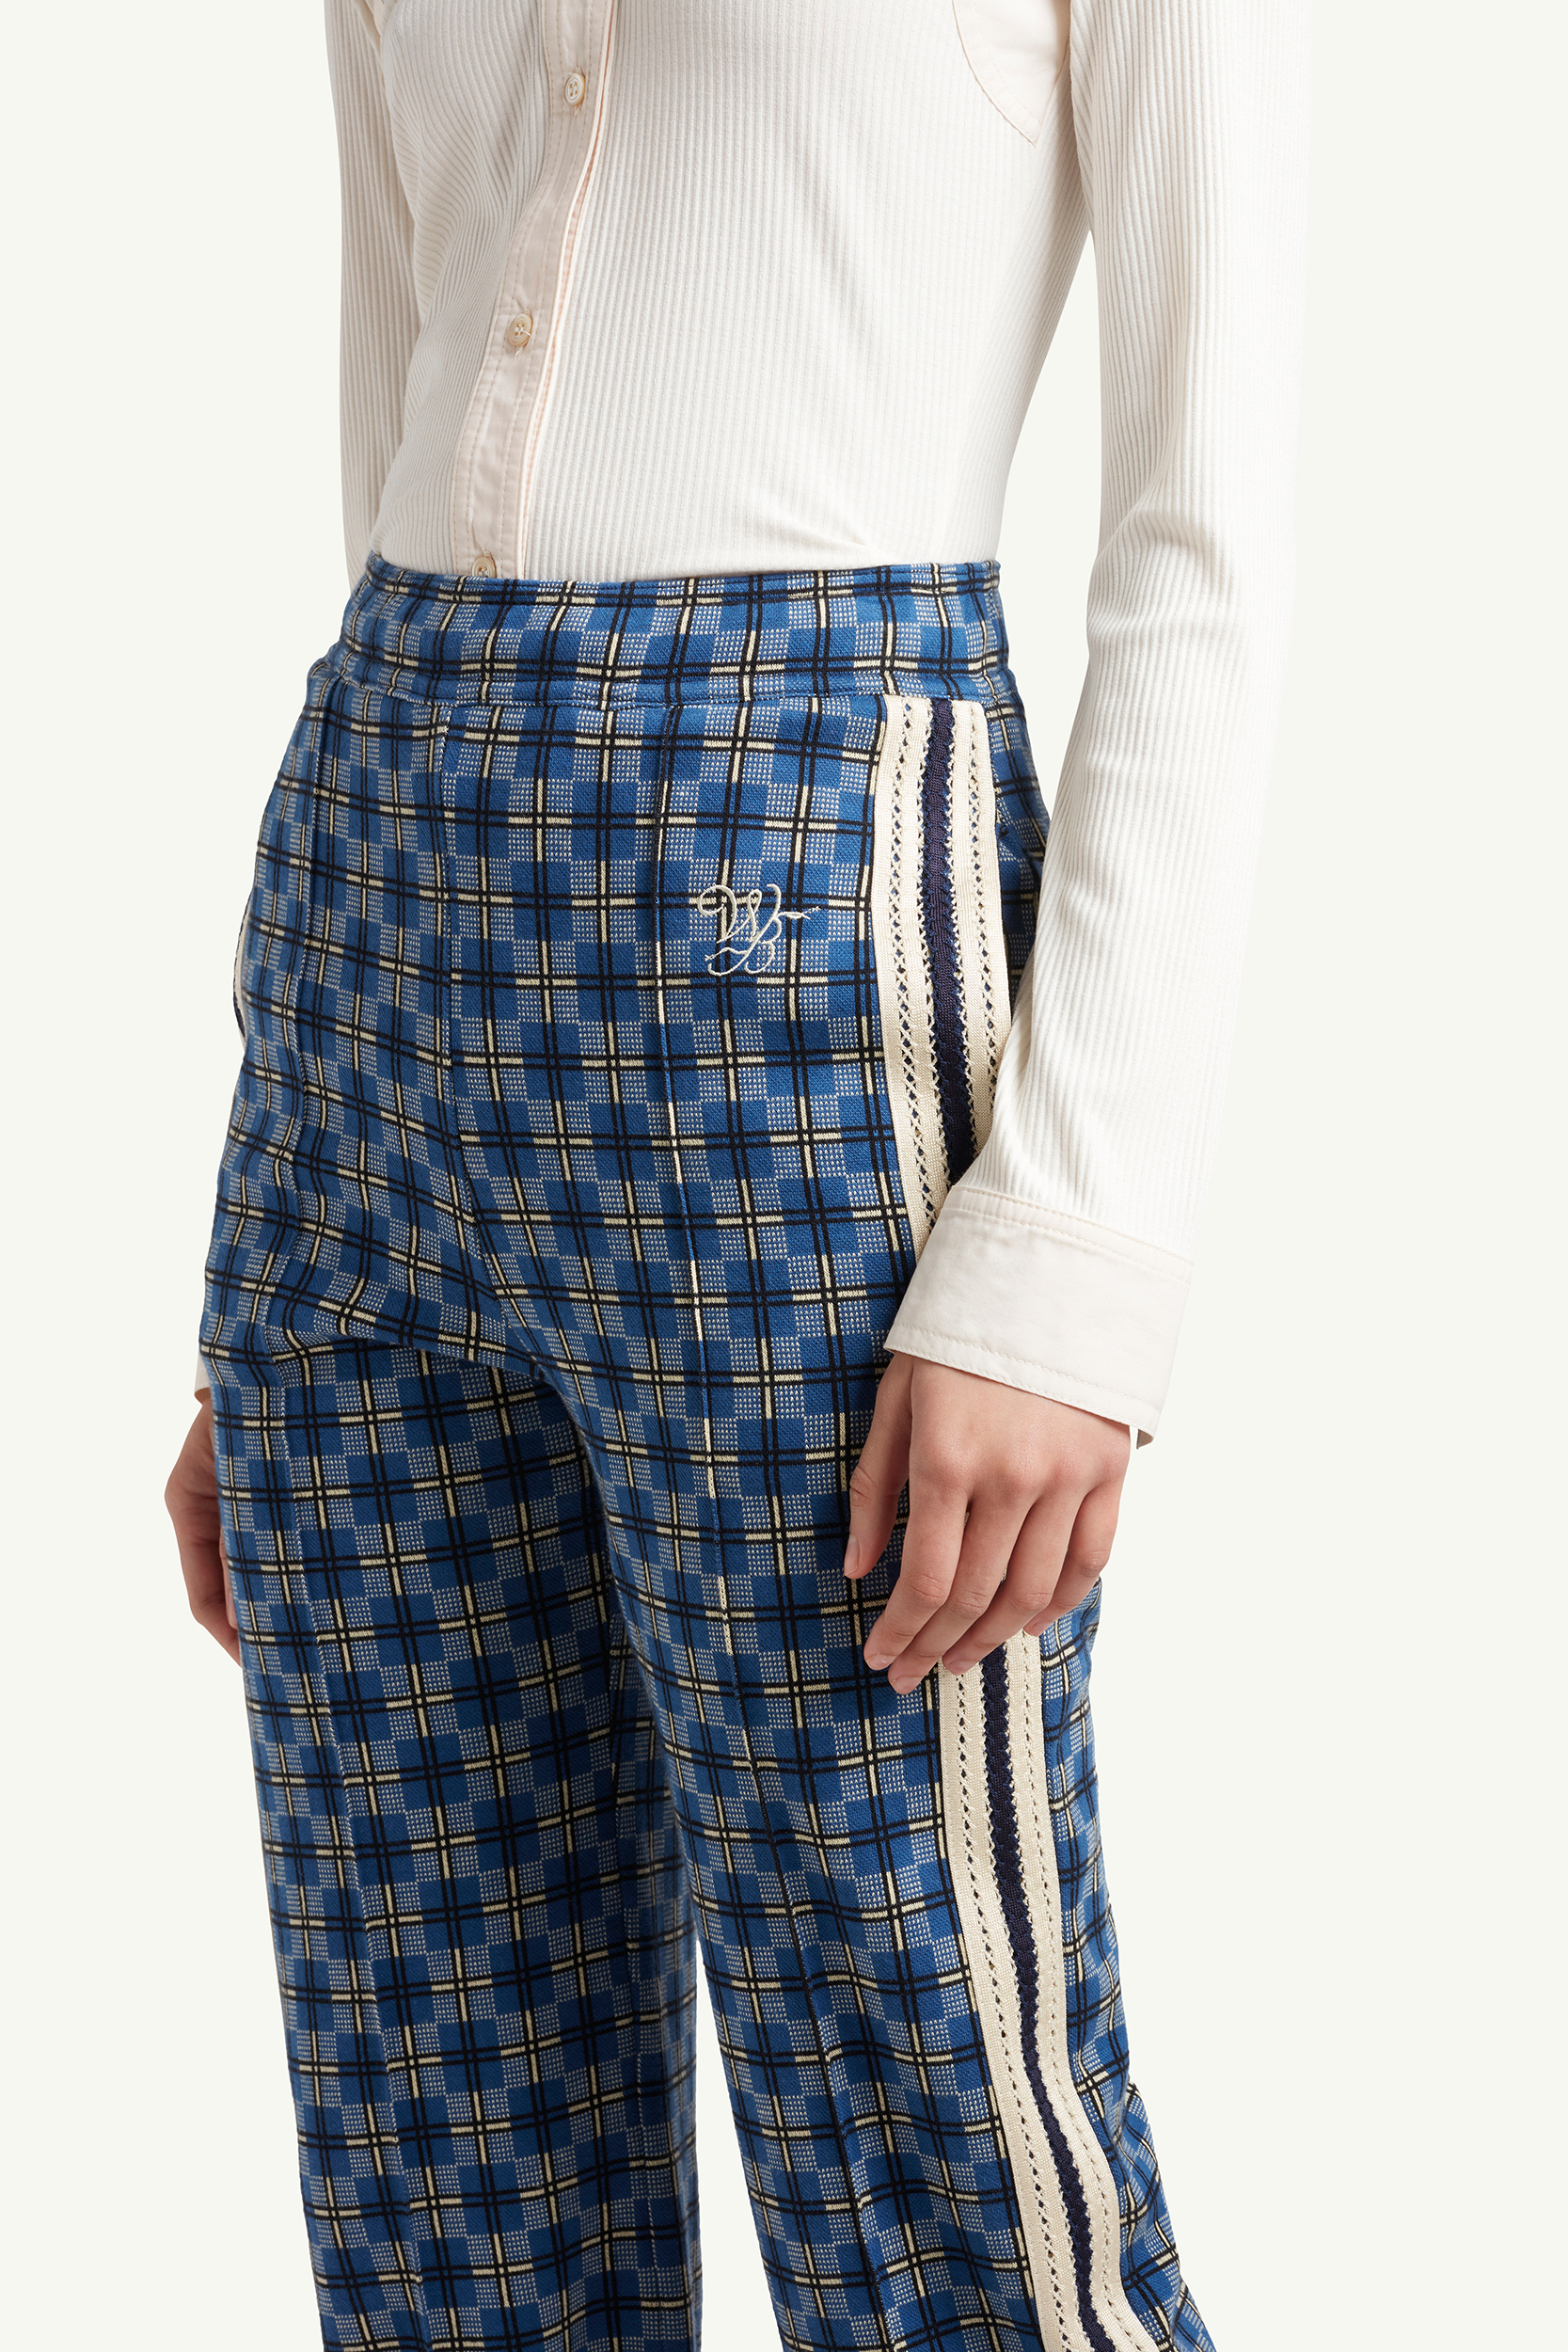 Detail shot of Wales Bonner blue pattern trousers with white stripes on the side